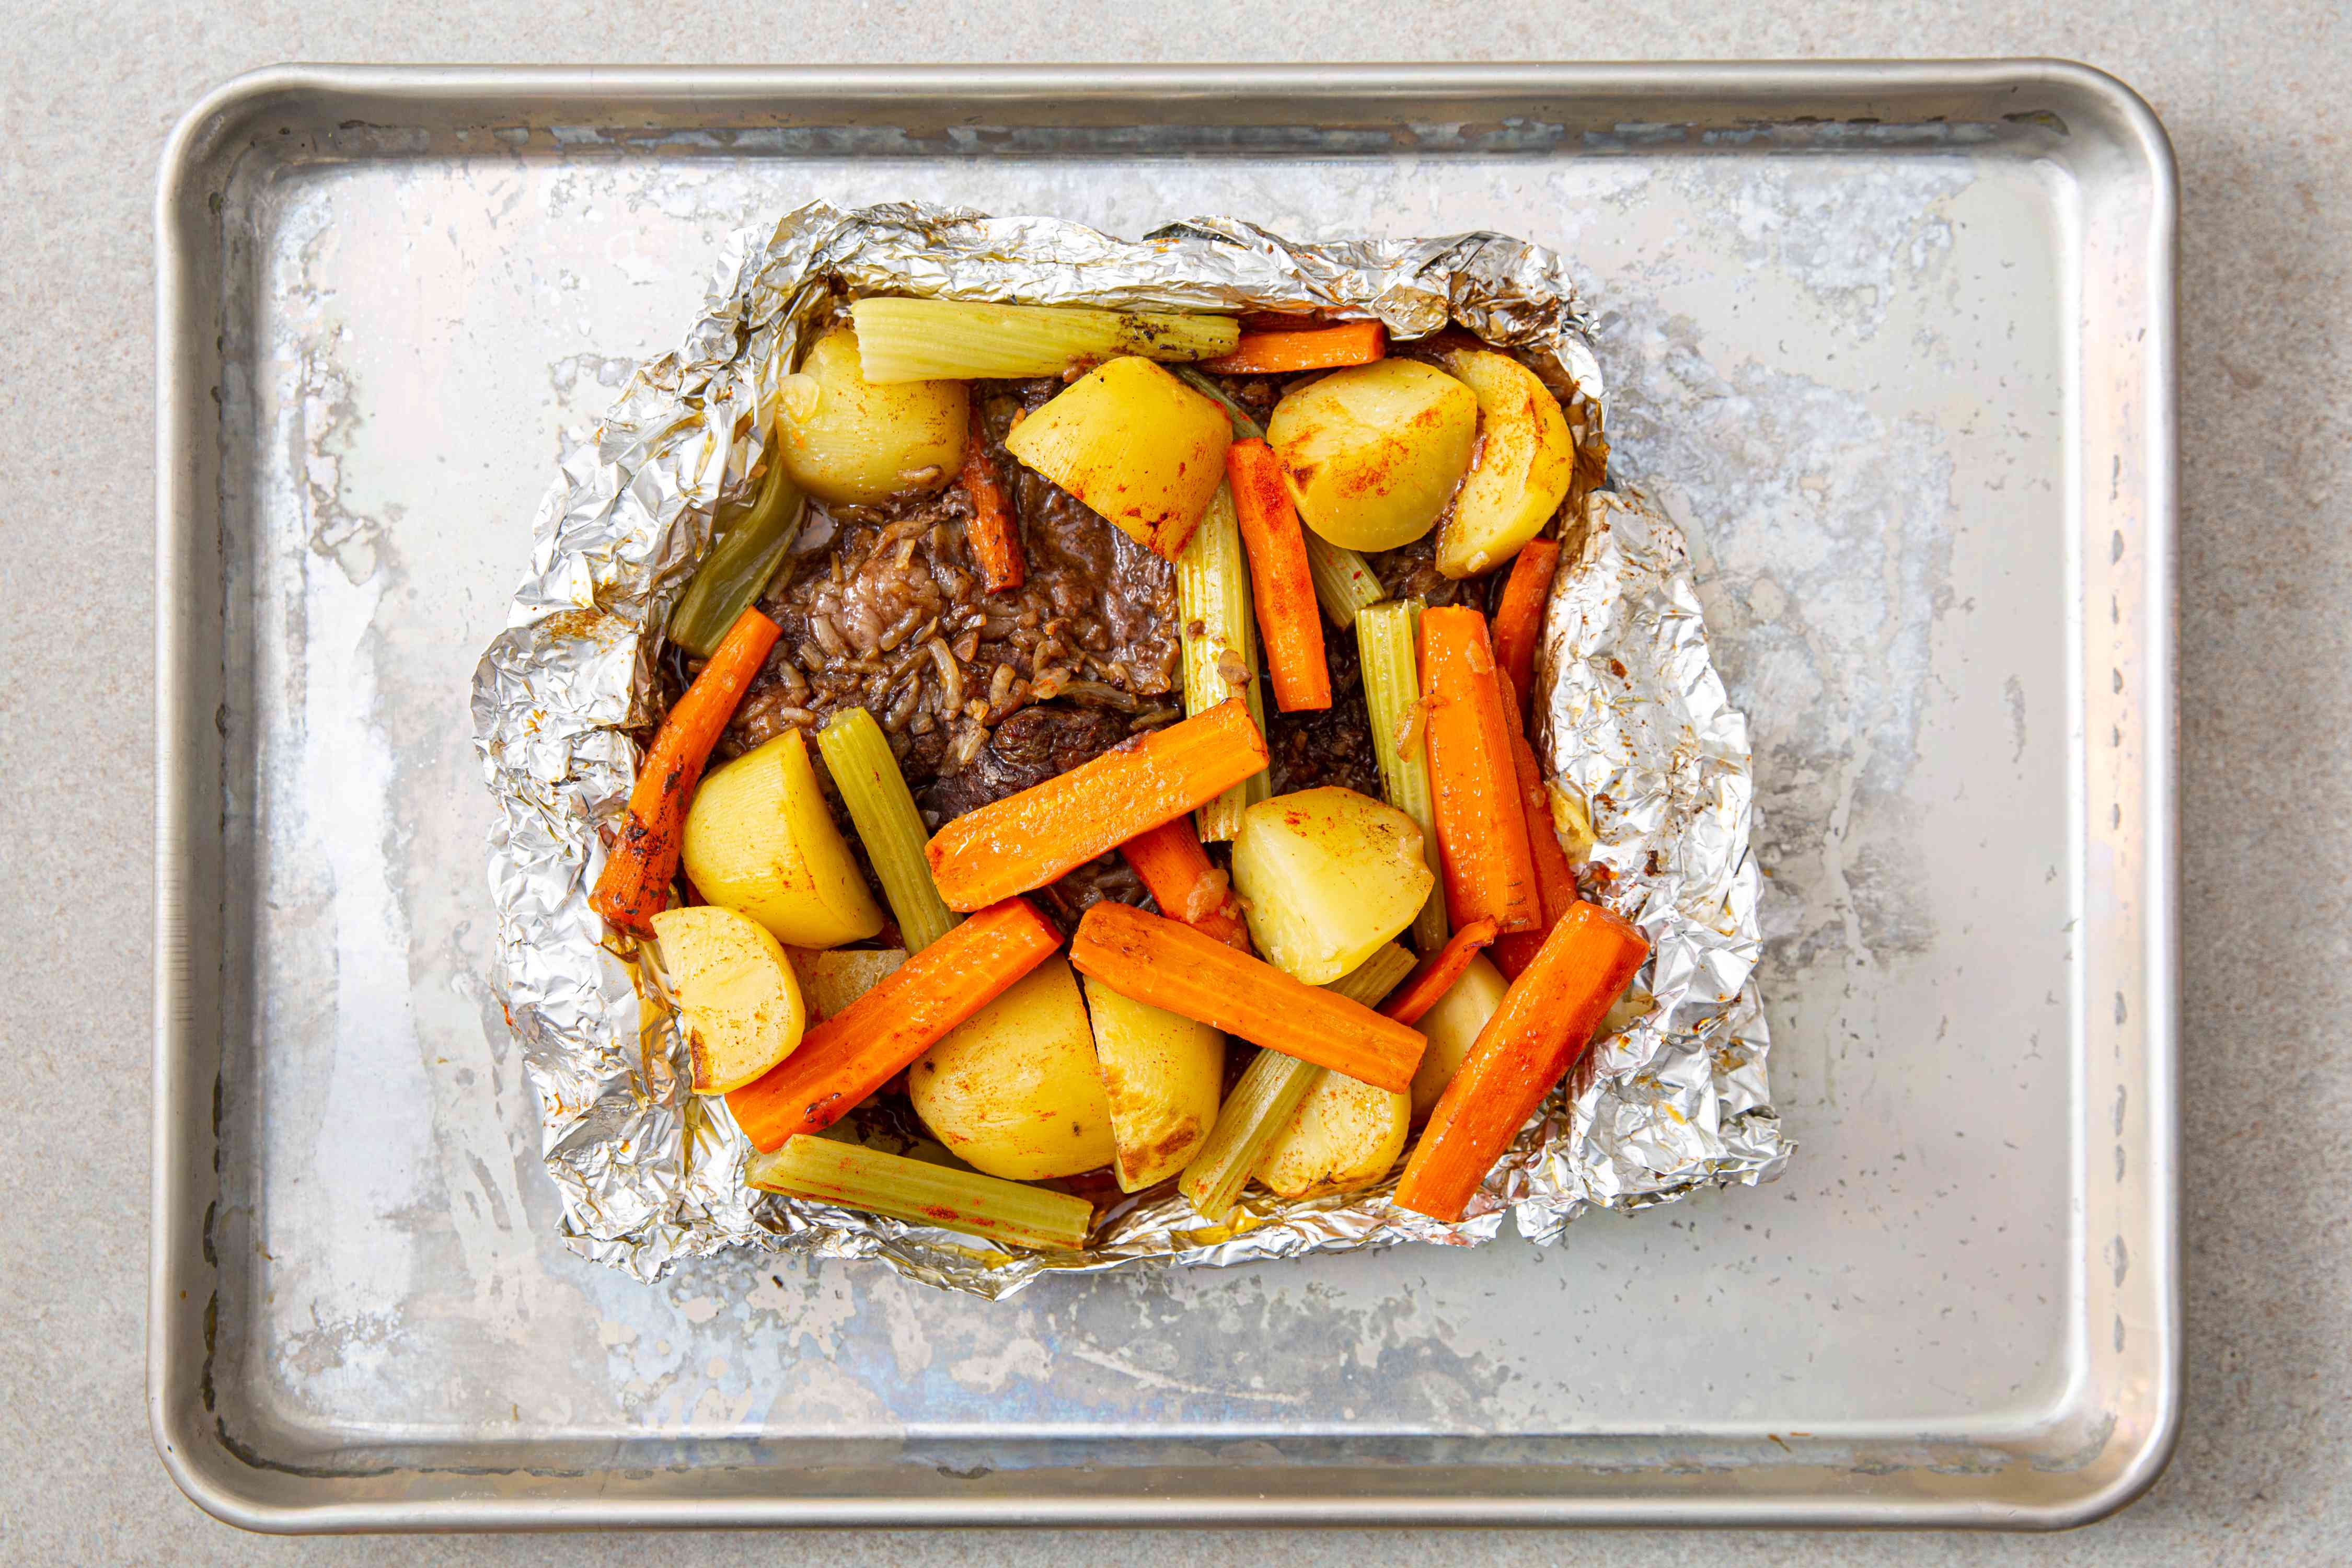 Baked chuck steak and vegetables